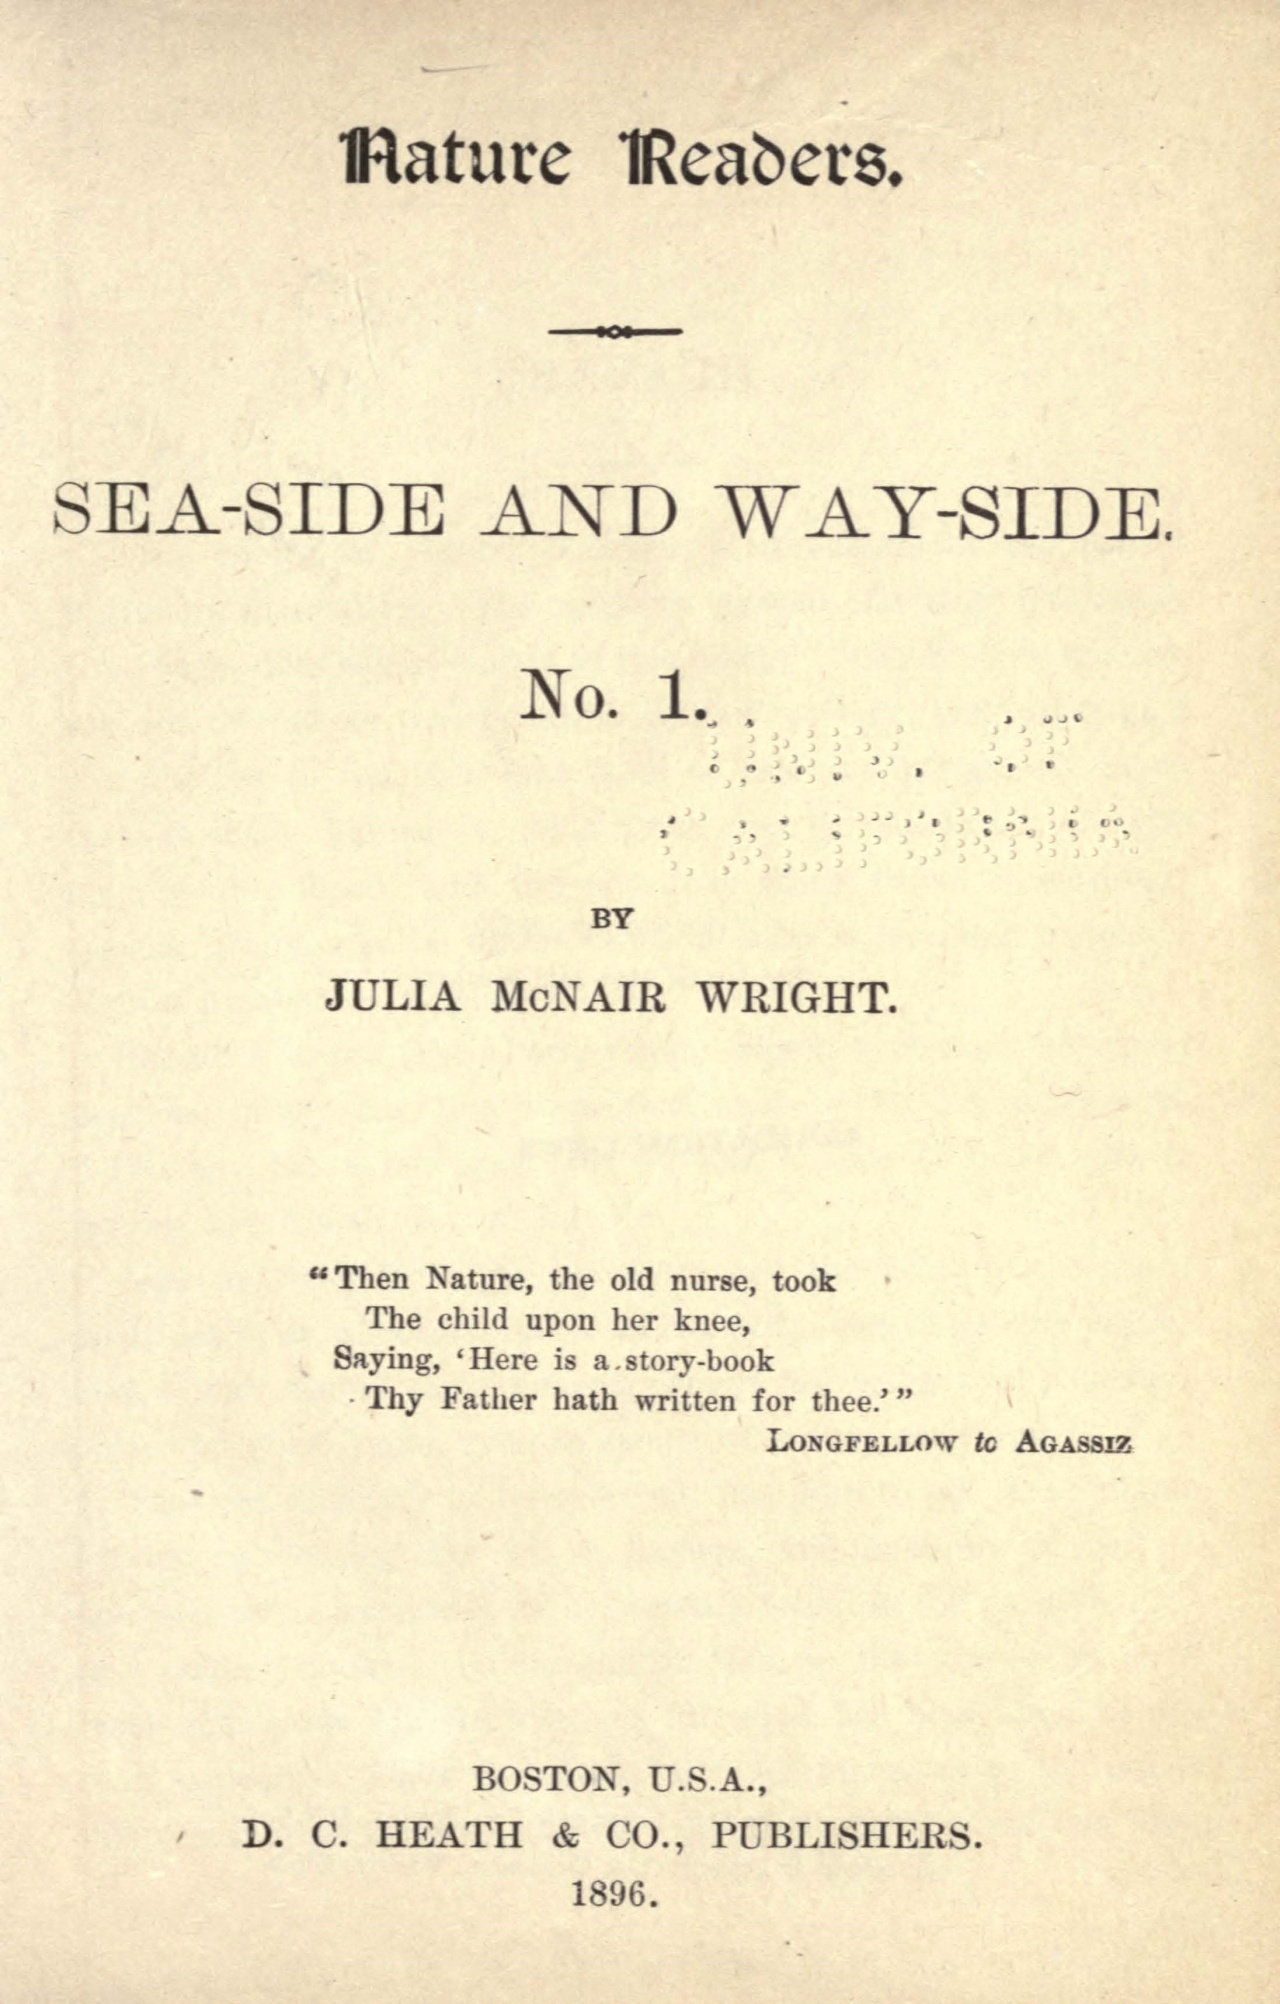 Wright, Julia McNair, Sea-Side and Way-Side No. 1 Title Page.jpg